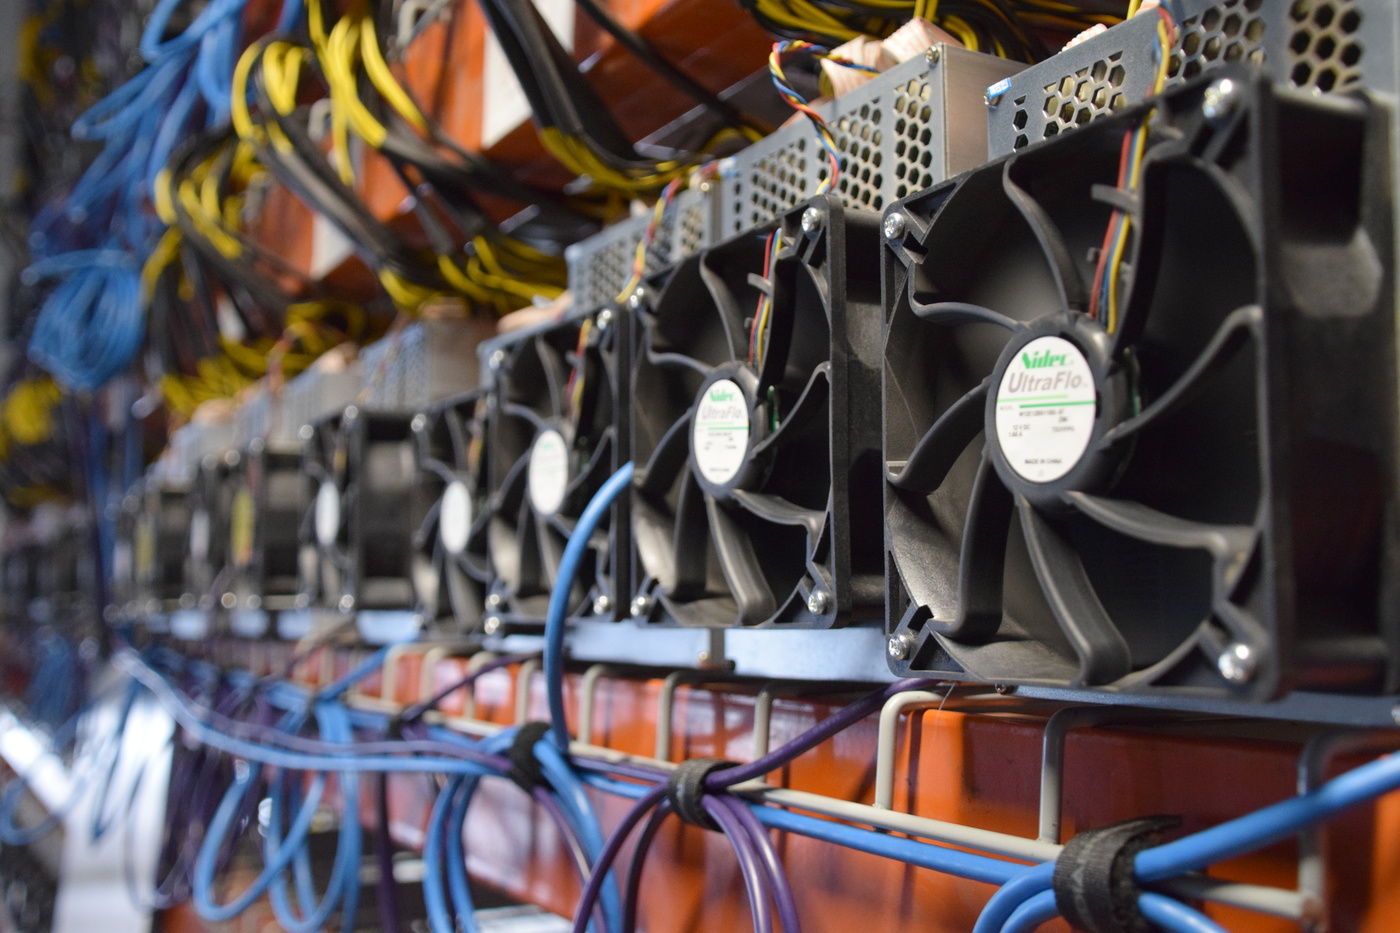 A NY town just placed a moratorium on crypto mining